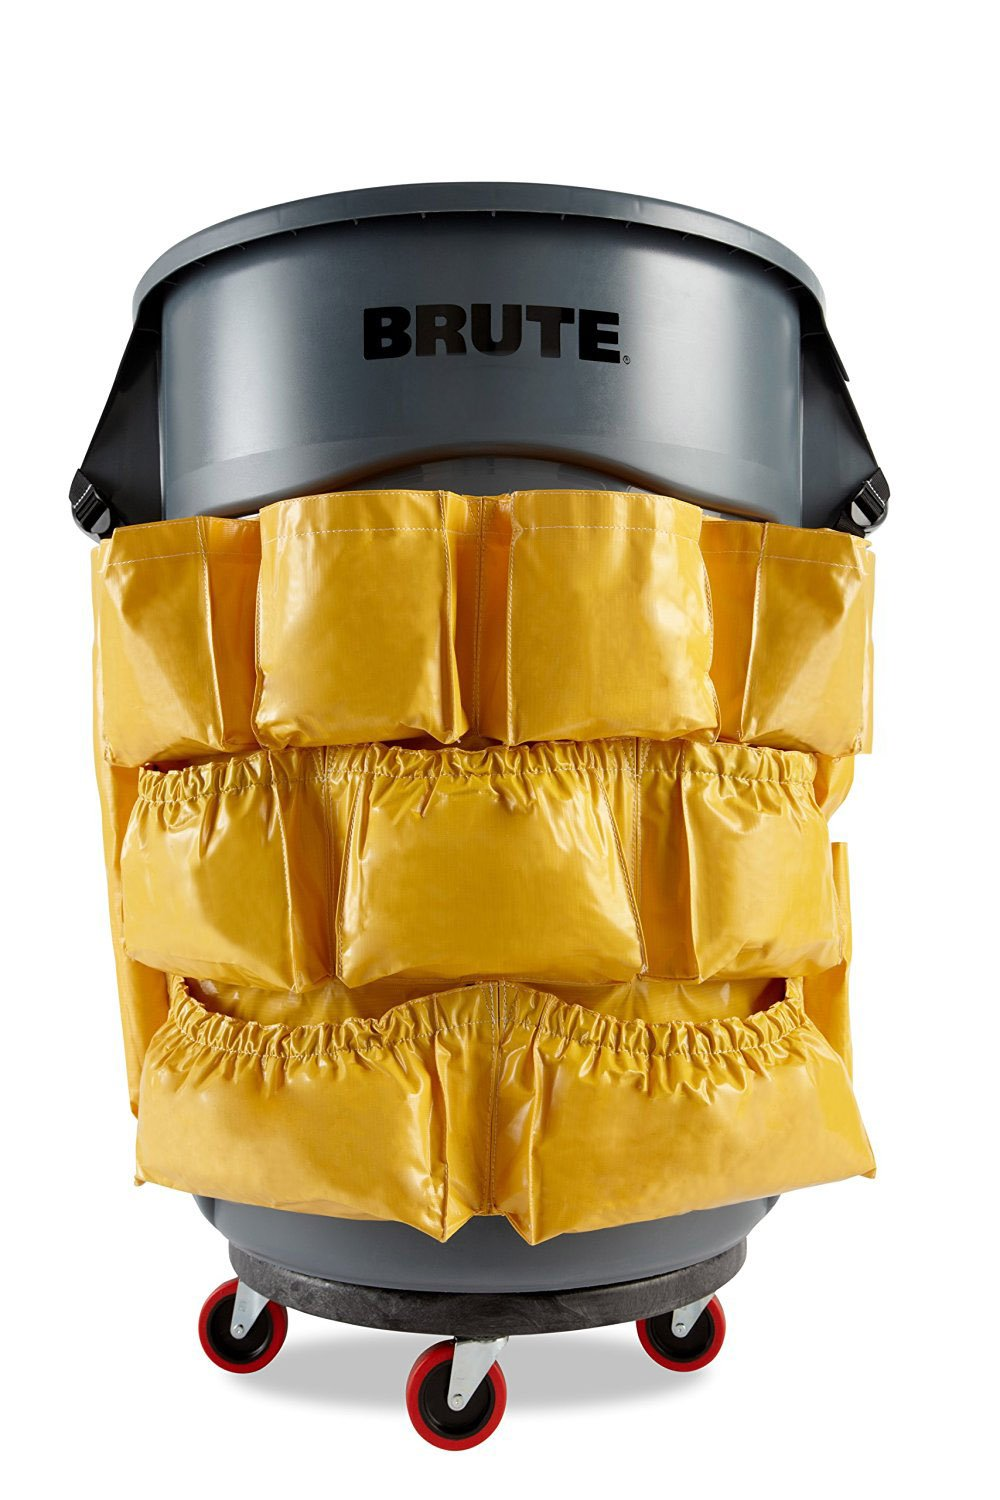 YELLOW ROUND Caddy Bag For Brute by Farag Janitorial